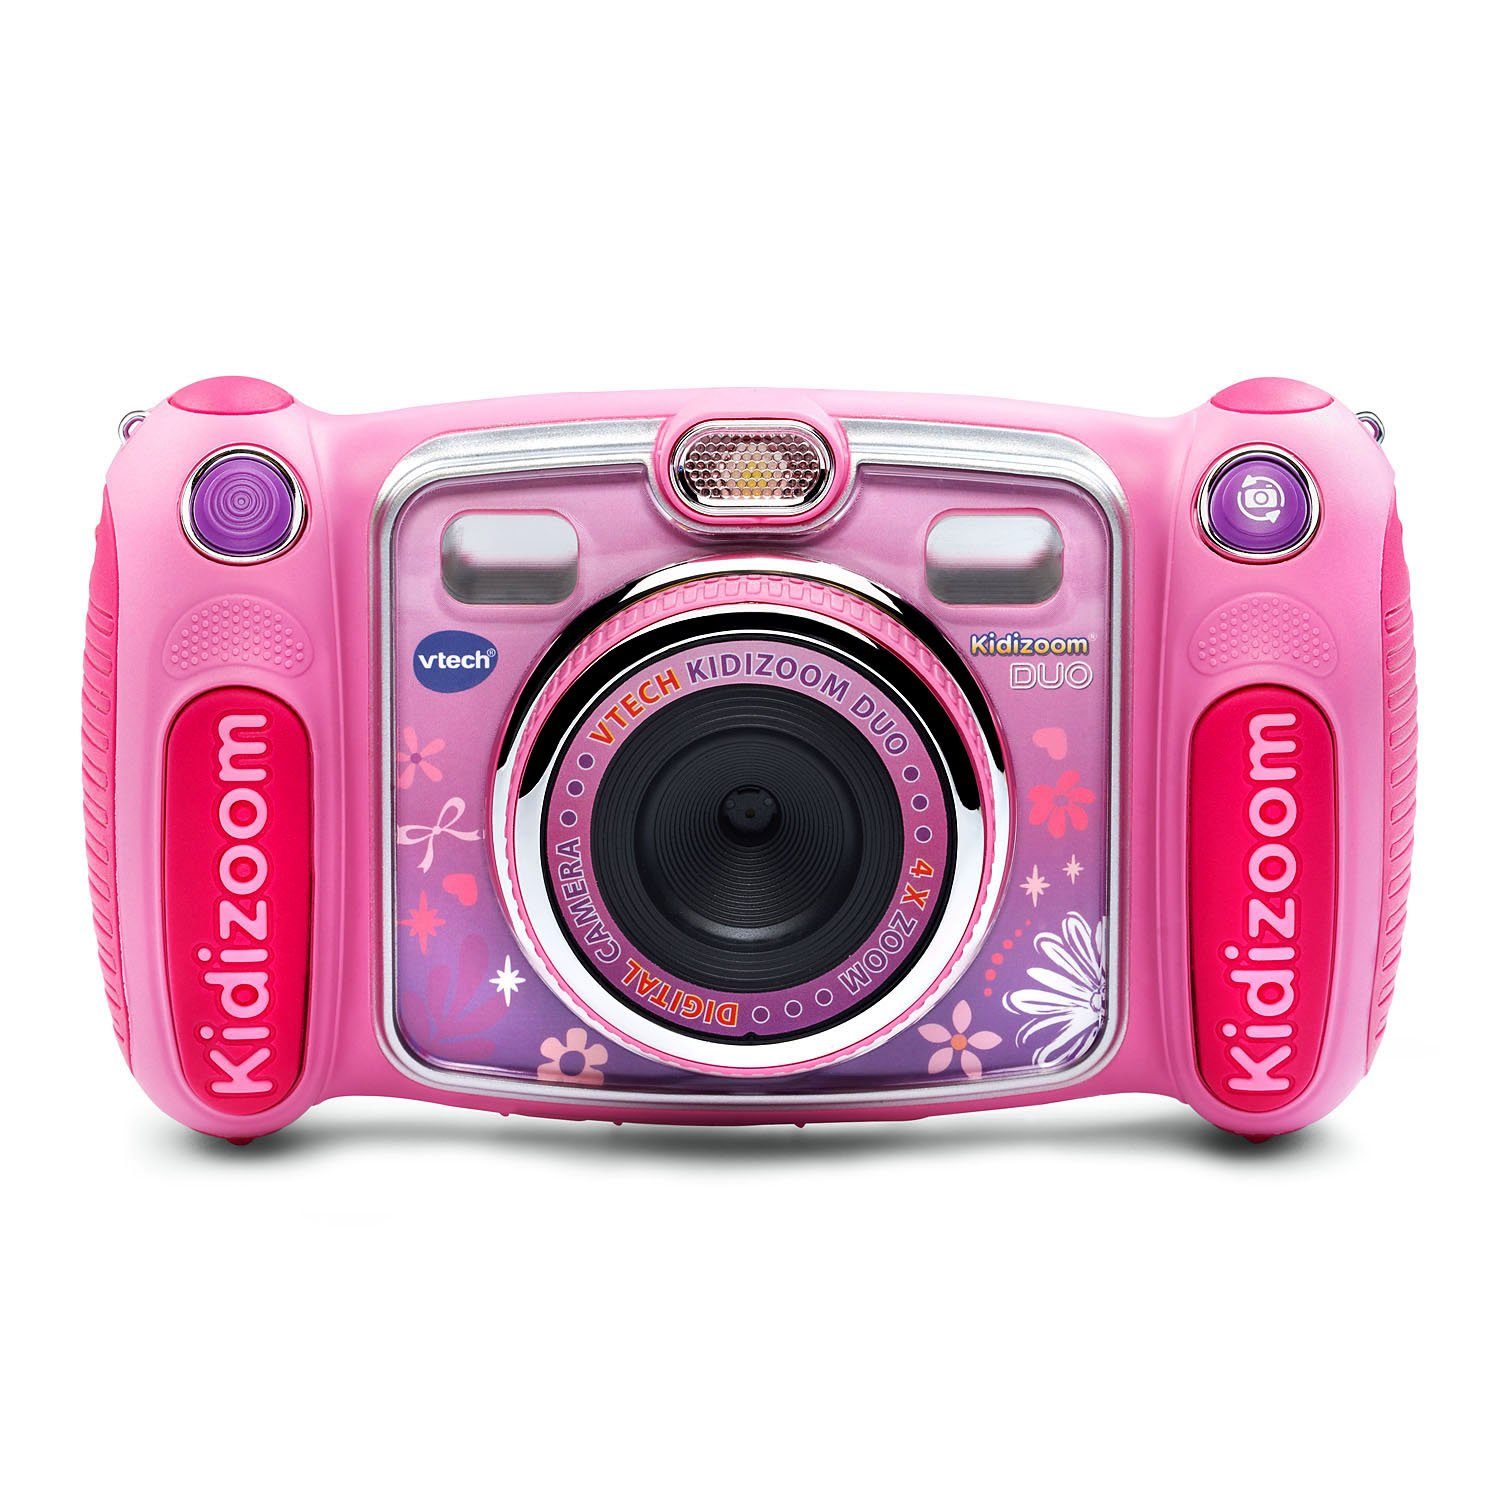 VTech Kidizoom Duo Selfie Camera, Amazon Exclusive, Pink 80-170850